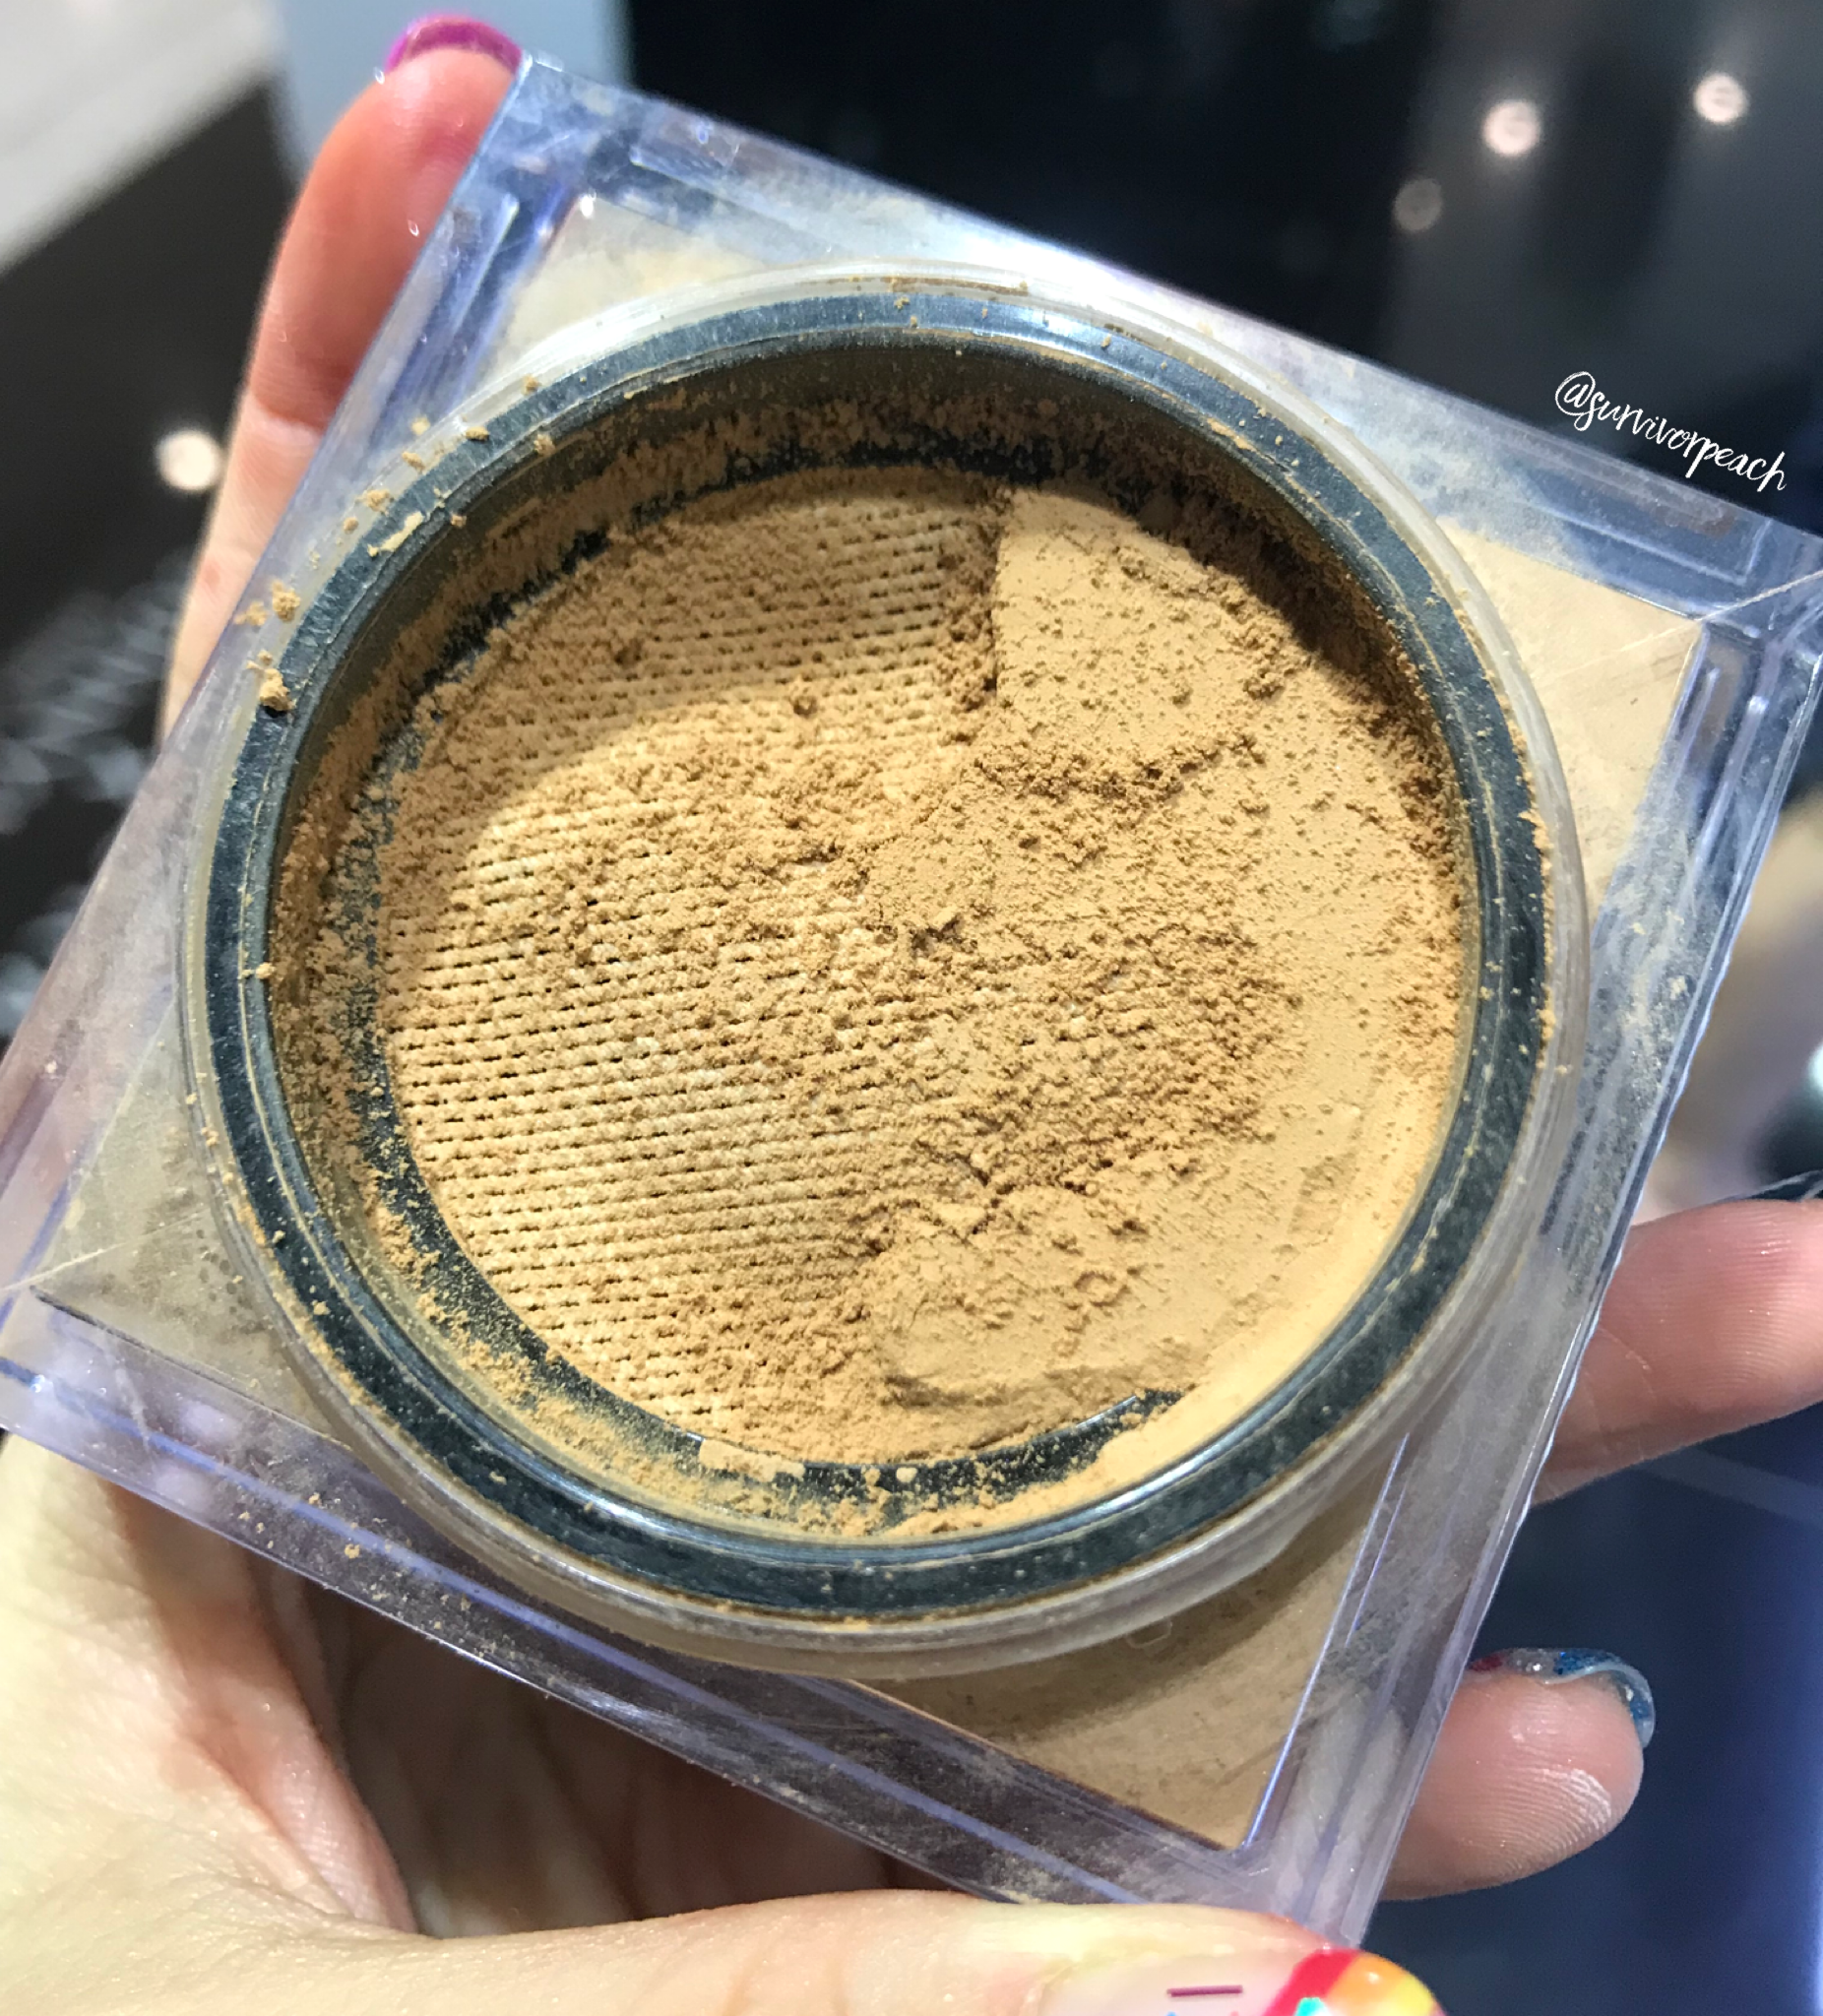 Huda Beauty Easy Bake Powder - Cinnamon Bun